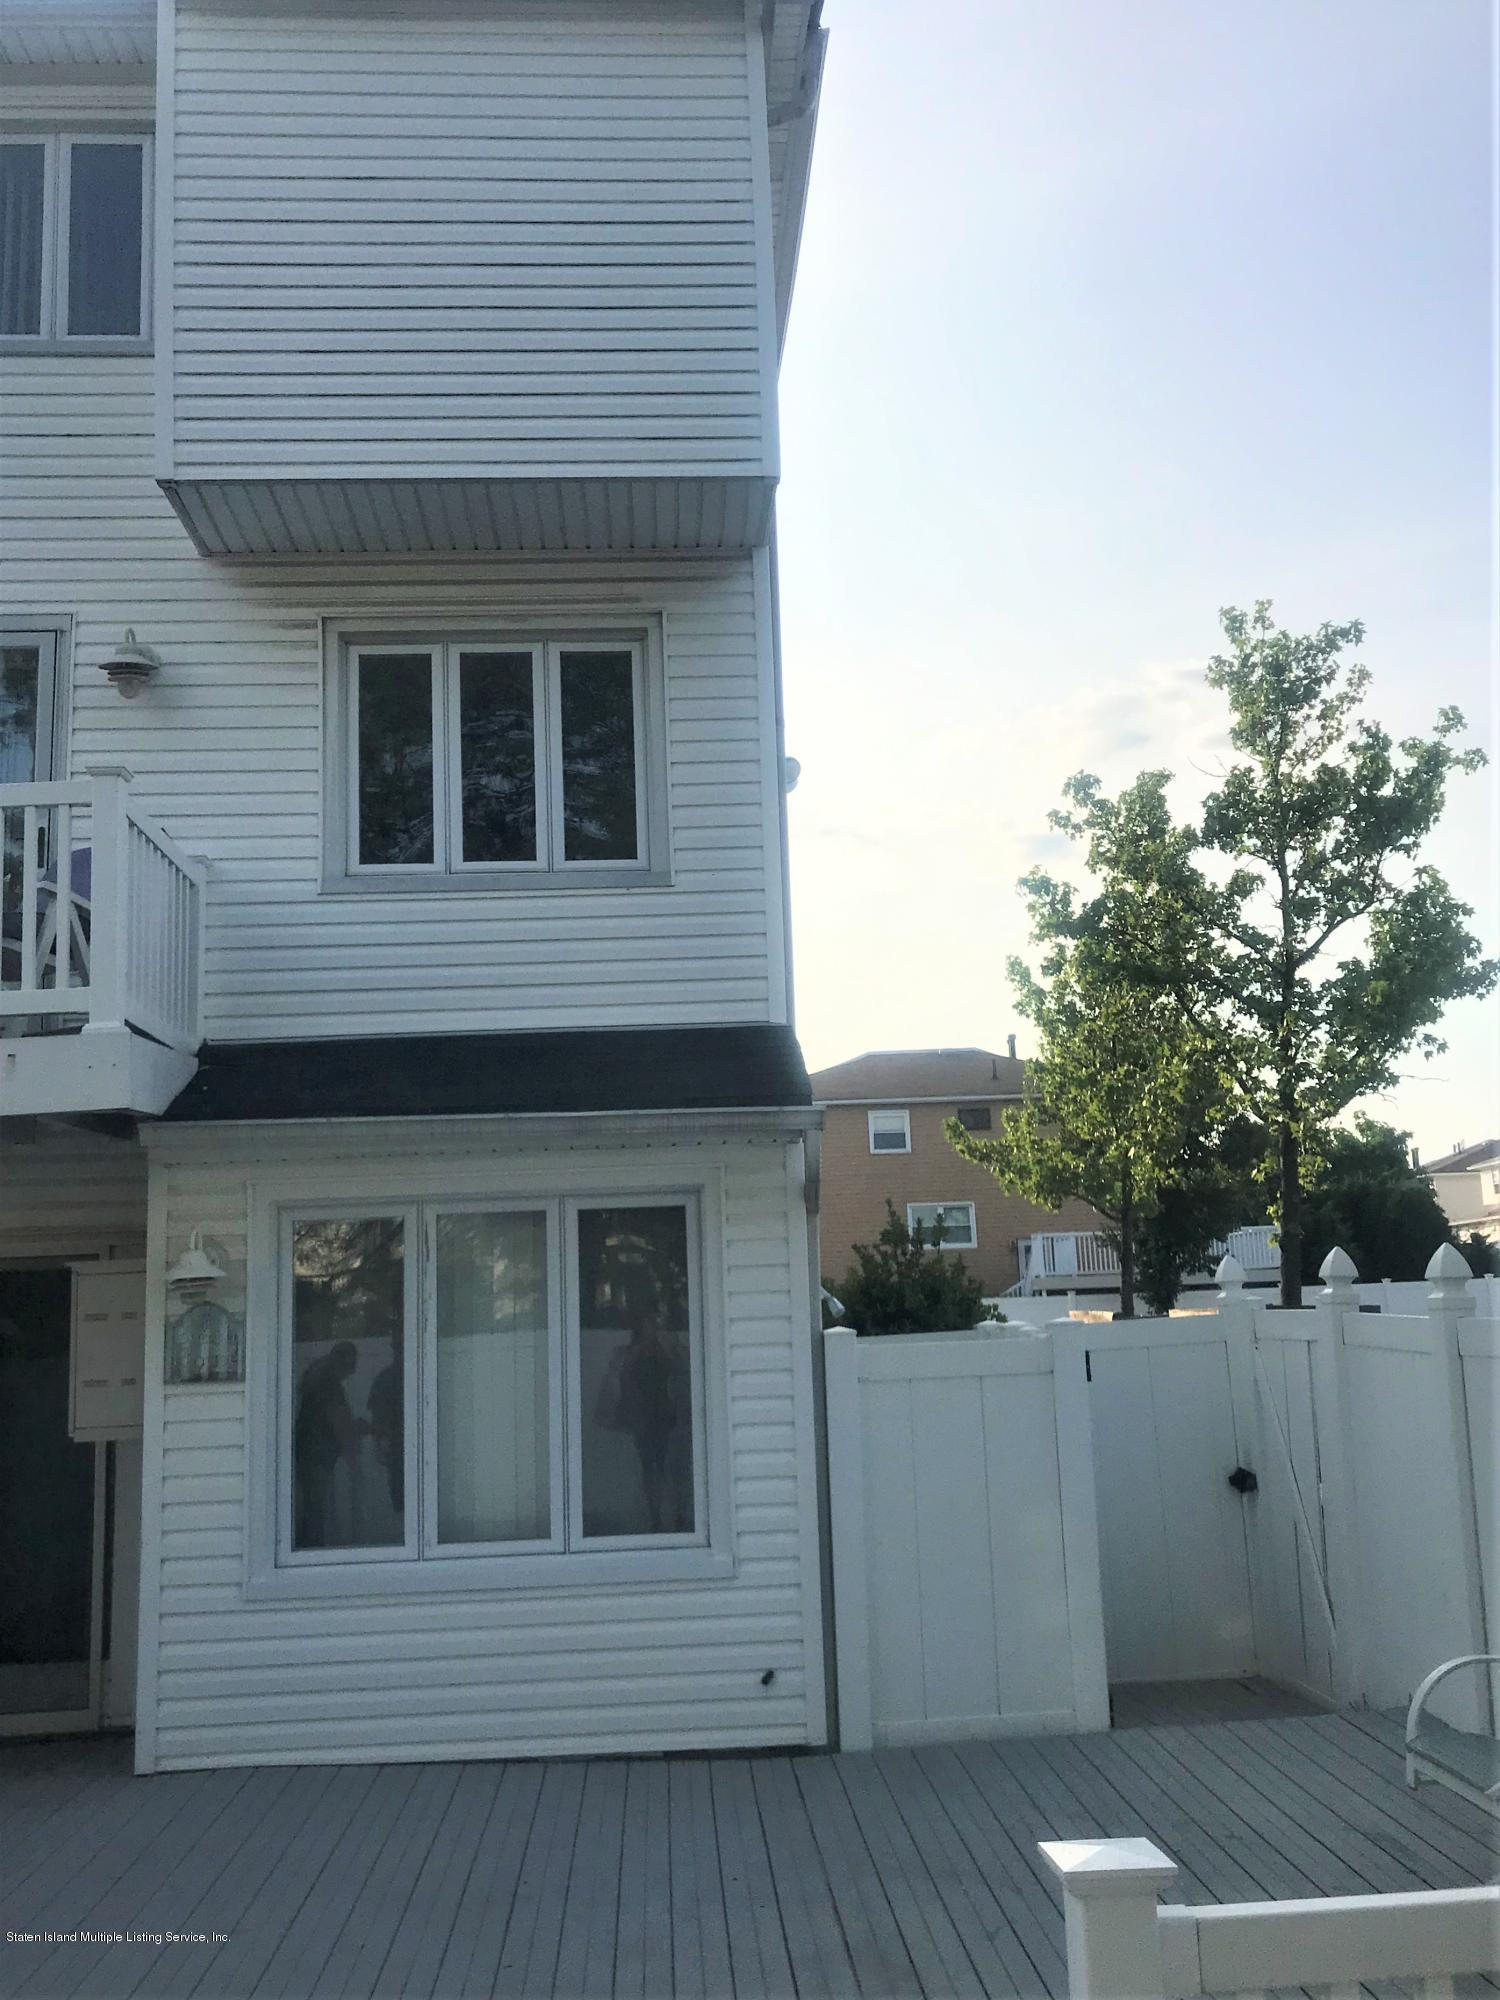 Single Family - Attached 19 Highland Lane  Staten Island, NY 10308, MLS-1130556-19